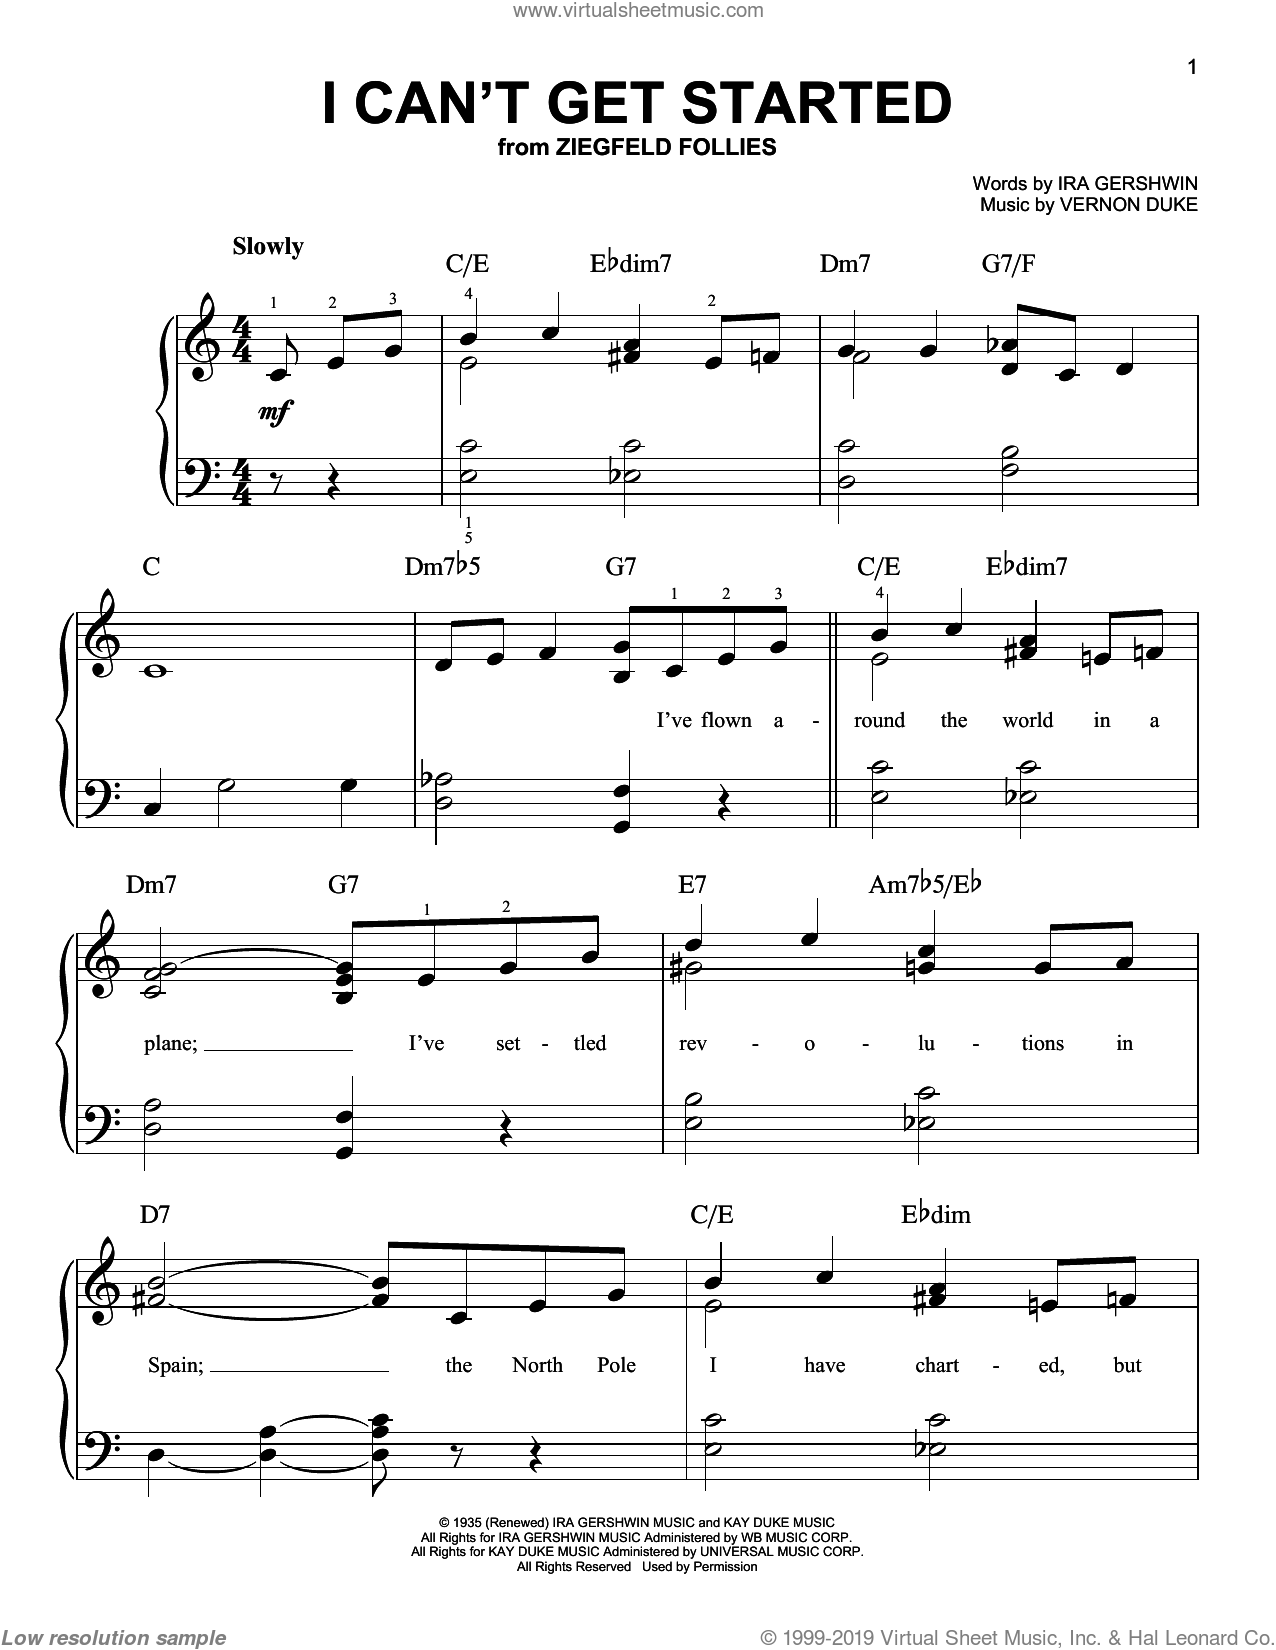 I Can't Get Started With You sheet music for piano solo by Vernon Duke